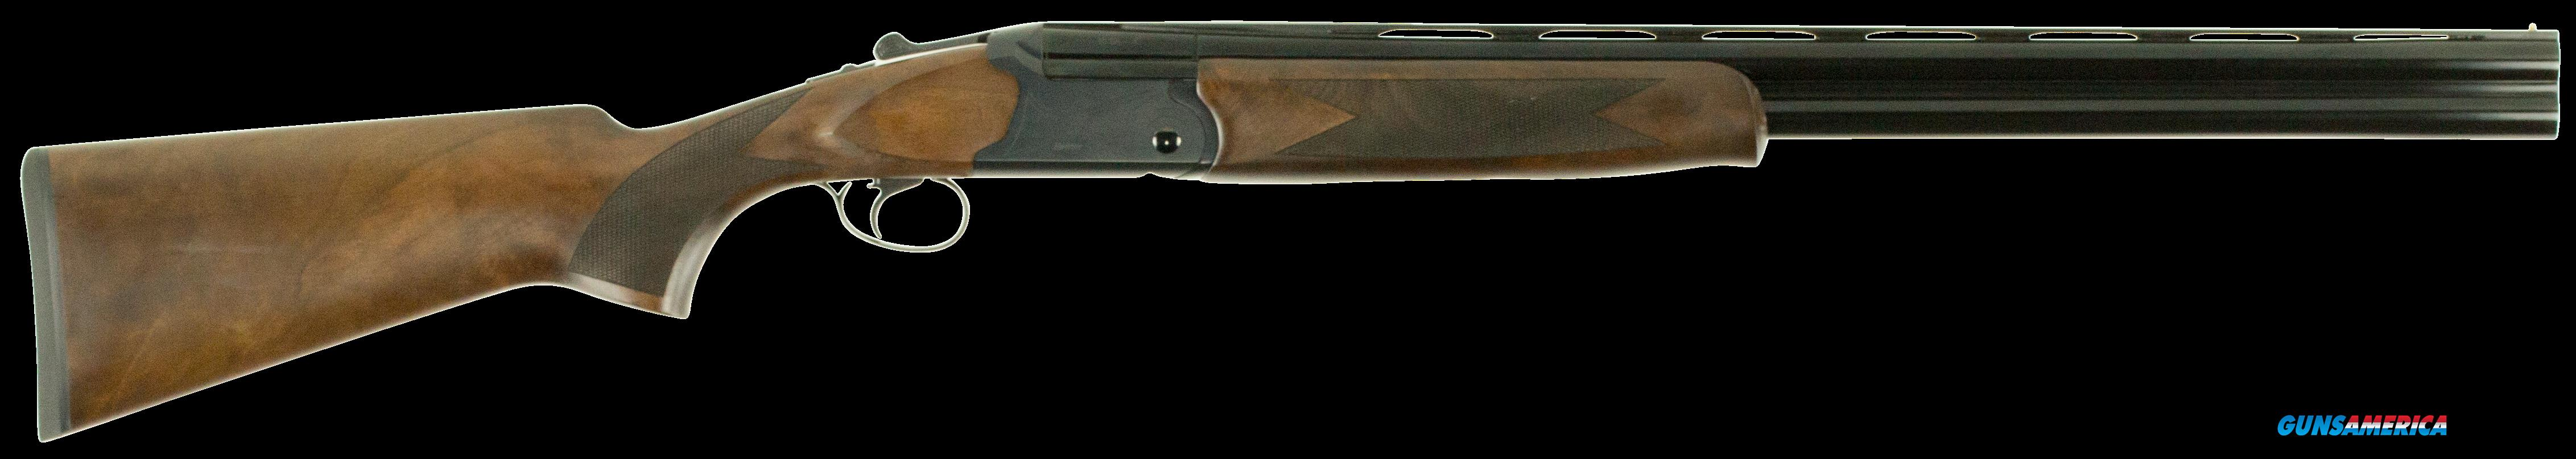 "Dickinson OSHUNTER OS Over/Under 12 Gauge 26"" 3"" Wood Stk White Steel Rcvr  Guns > Shotguns > D Misc Shotguns"